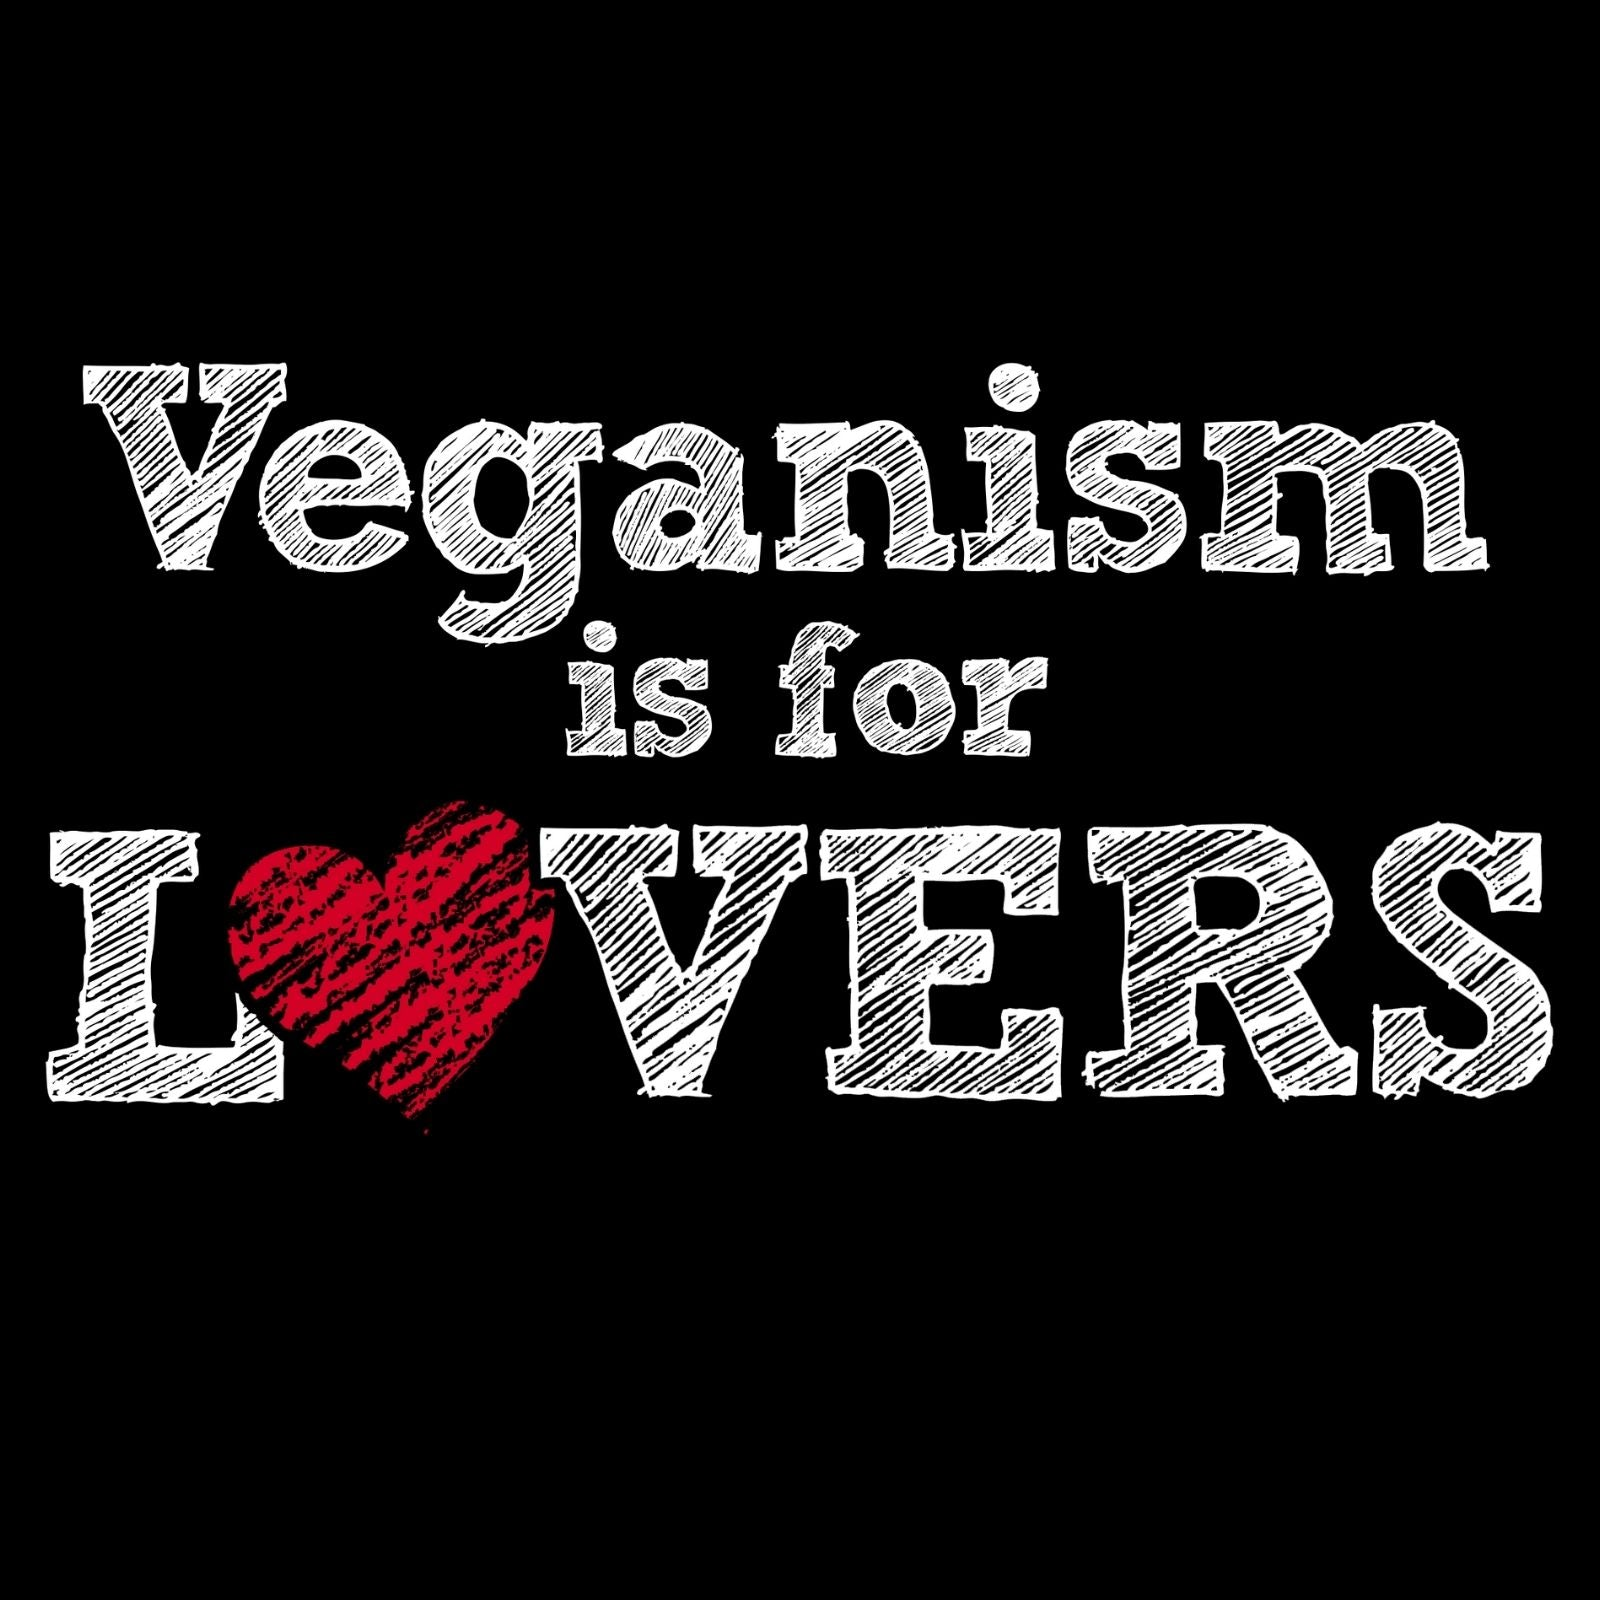 Veganism Is For Lovers - Bastard Graphics